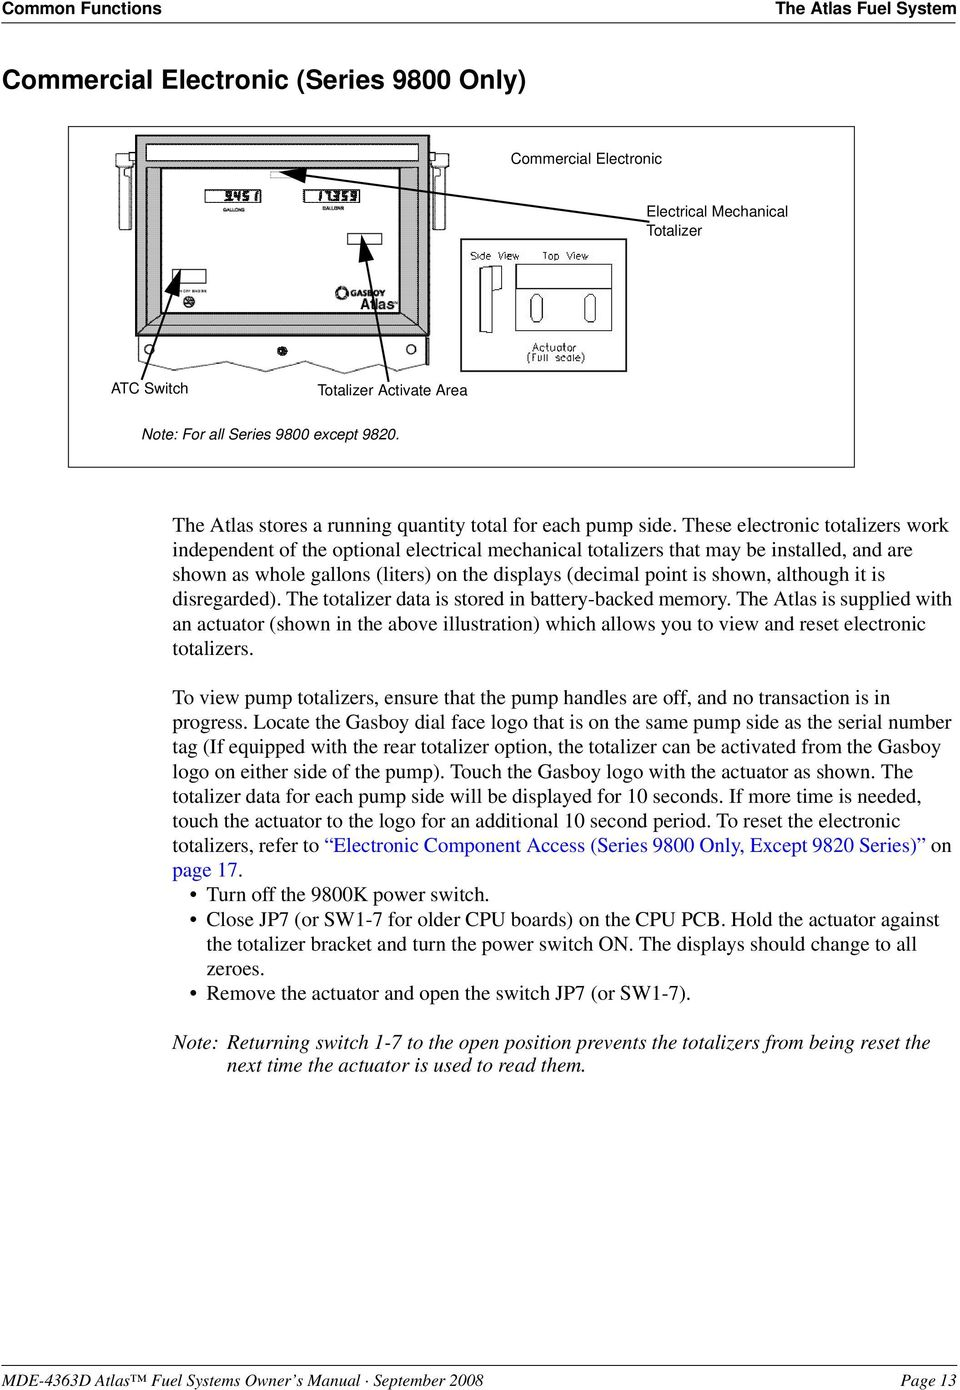 Atlas Fuel Systems. Owner s Manual MDE-4363D - PDF on